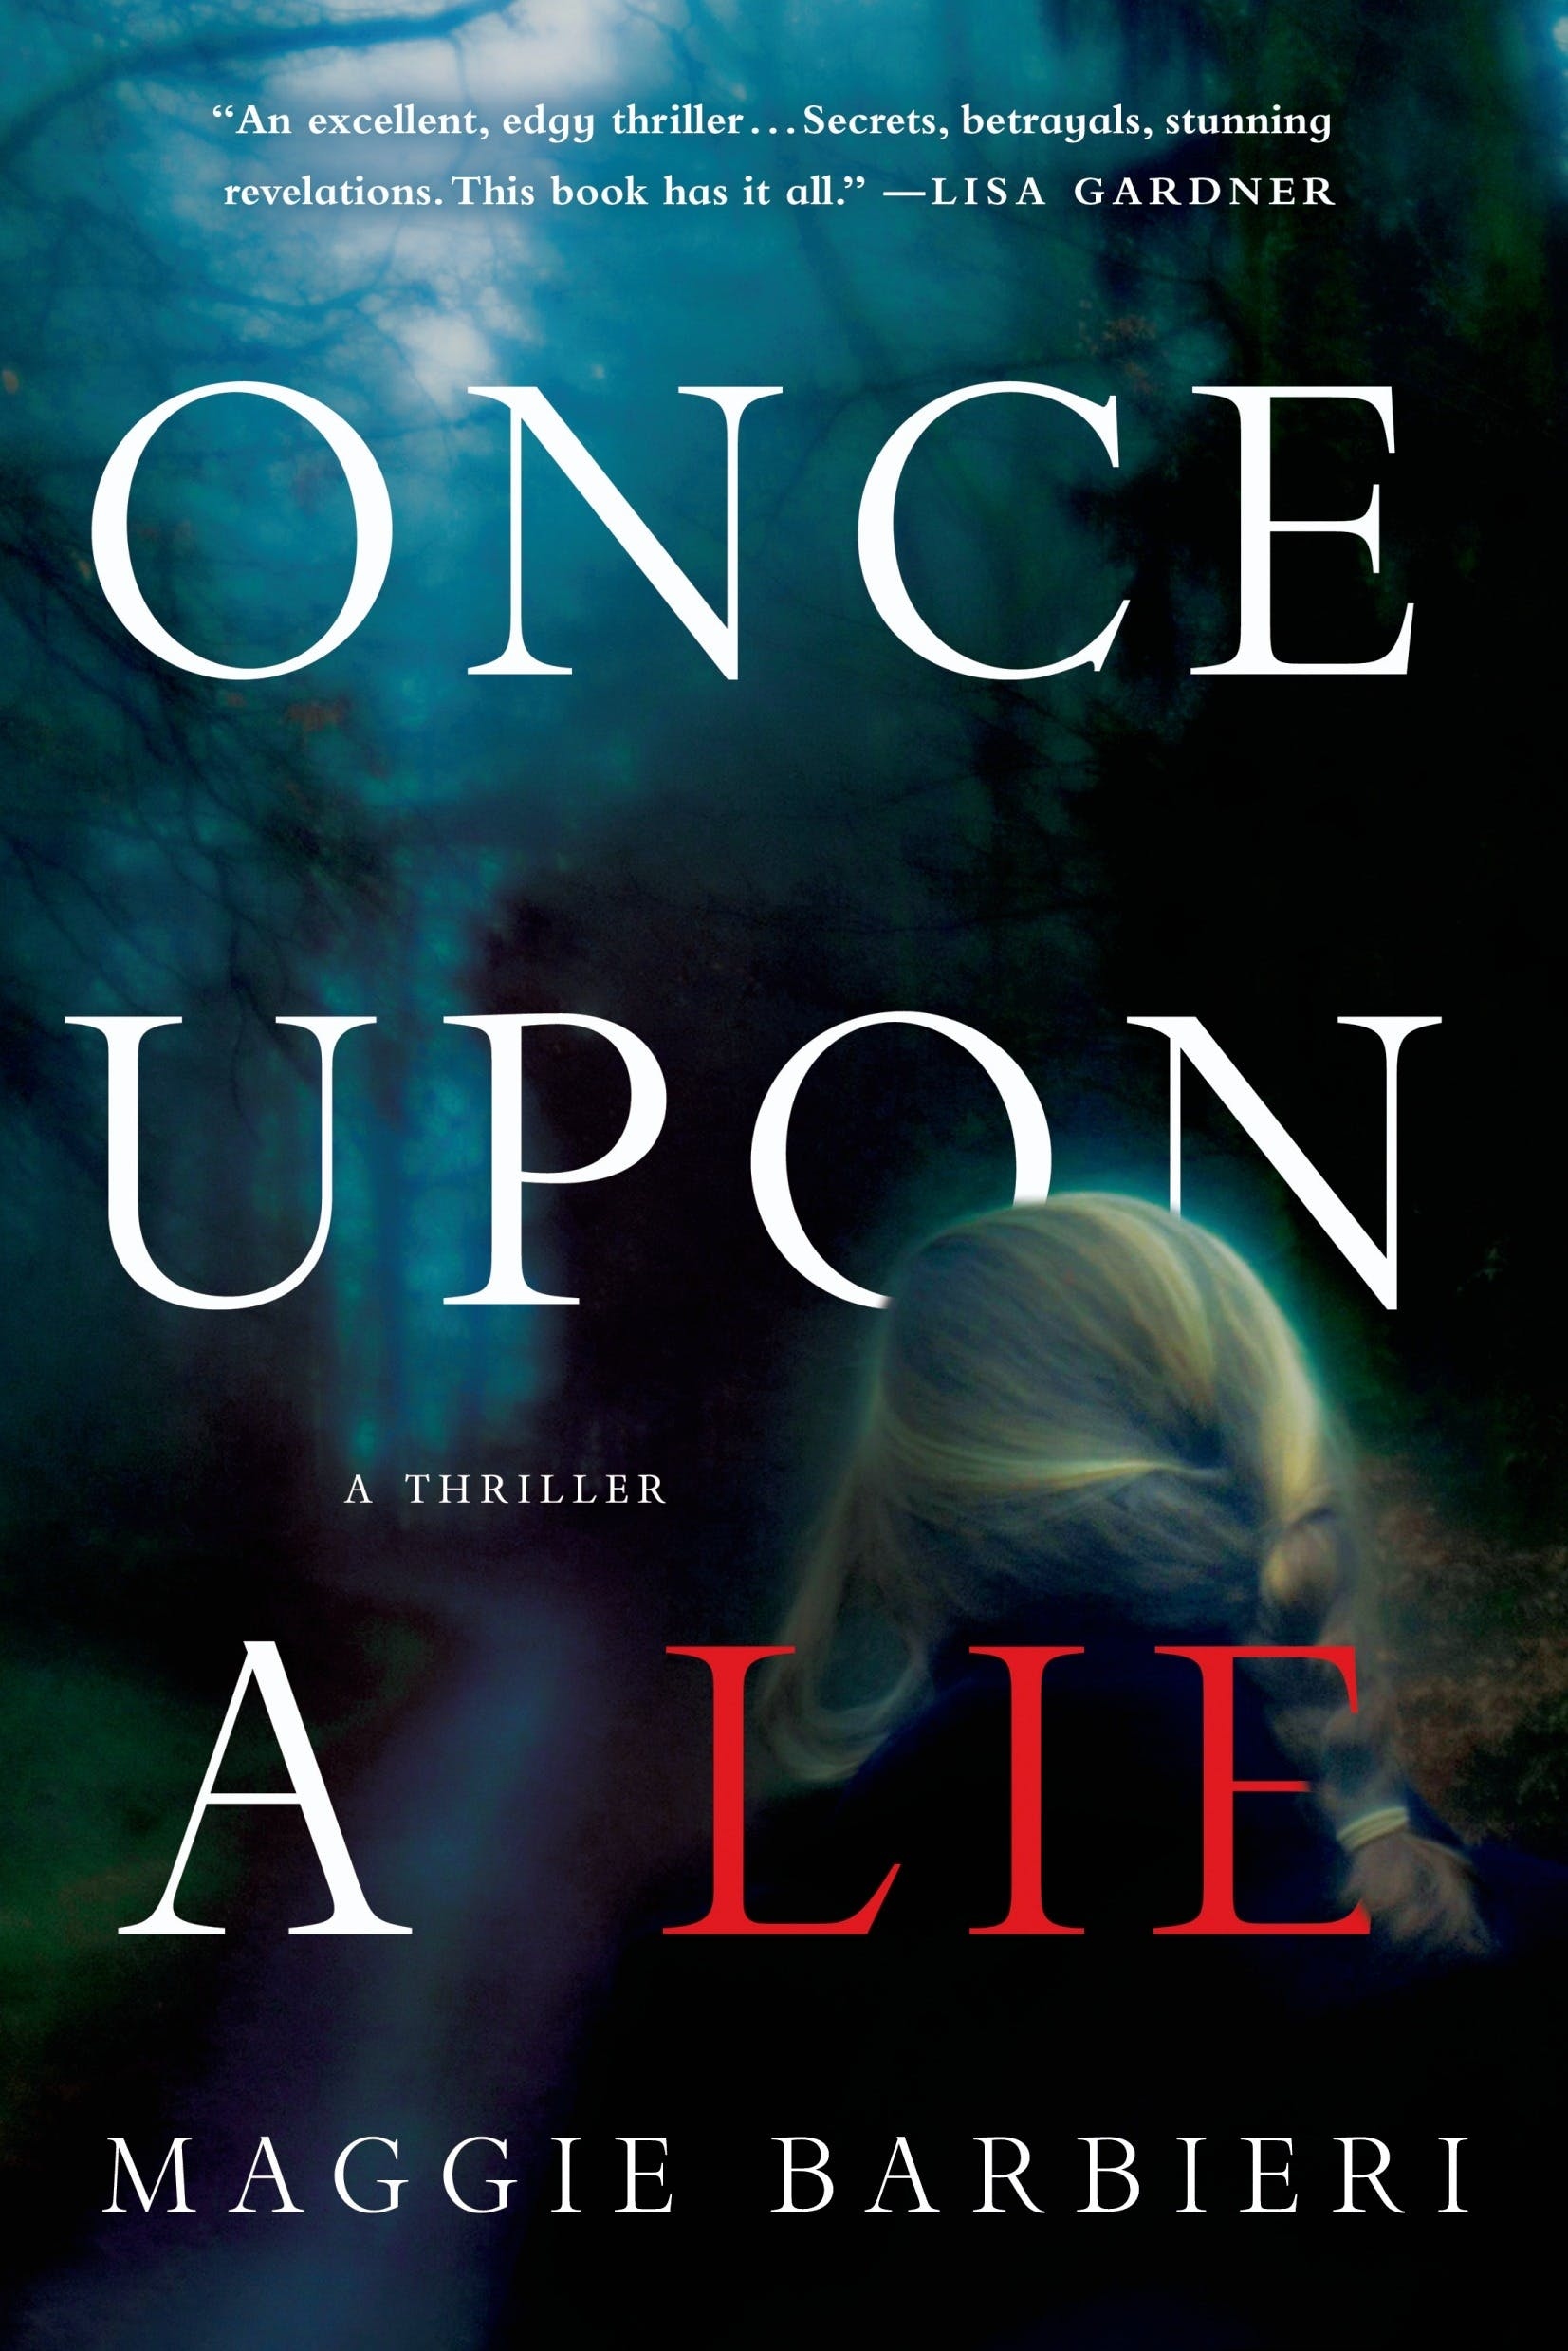 Image of Once Upon a Lie